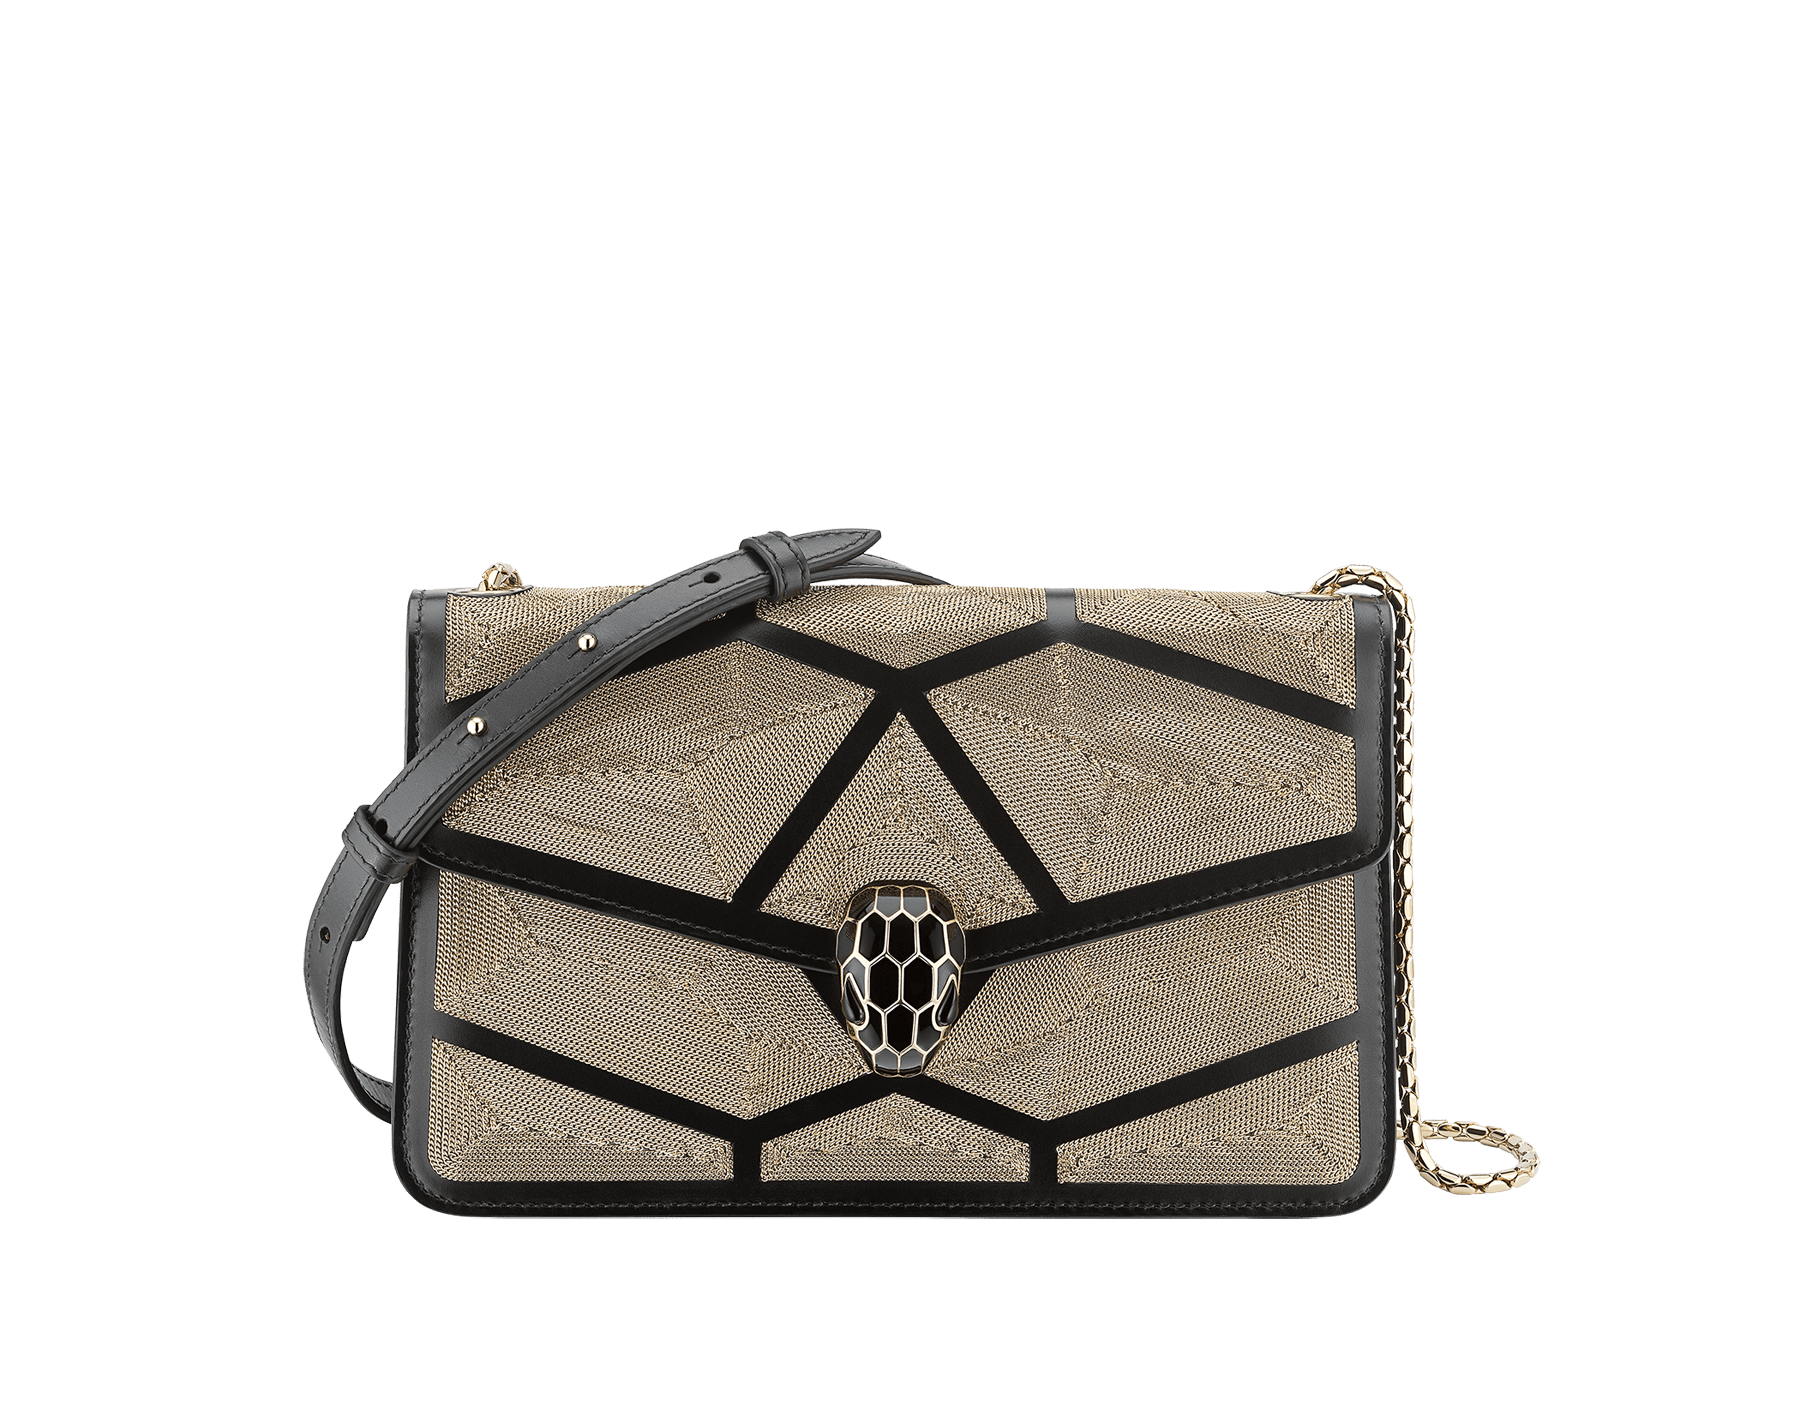 """Serpenti Forever"" crossbody bag in black calf leather with a Million Chain motif. Iconic snake head closure in light gold plated brass enriched with black enamel and black onyx eyes. 288909 image 1"